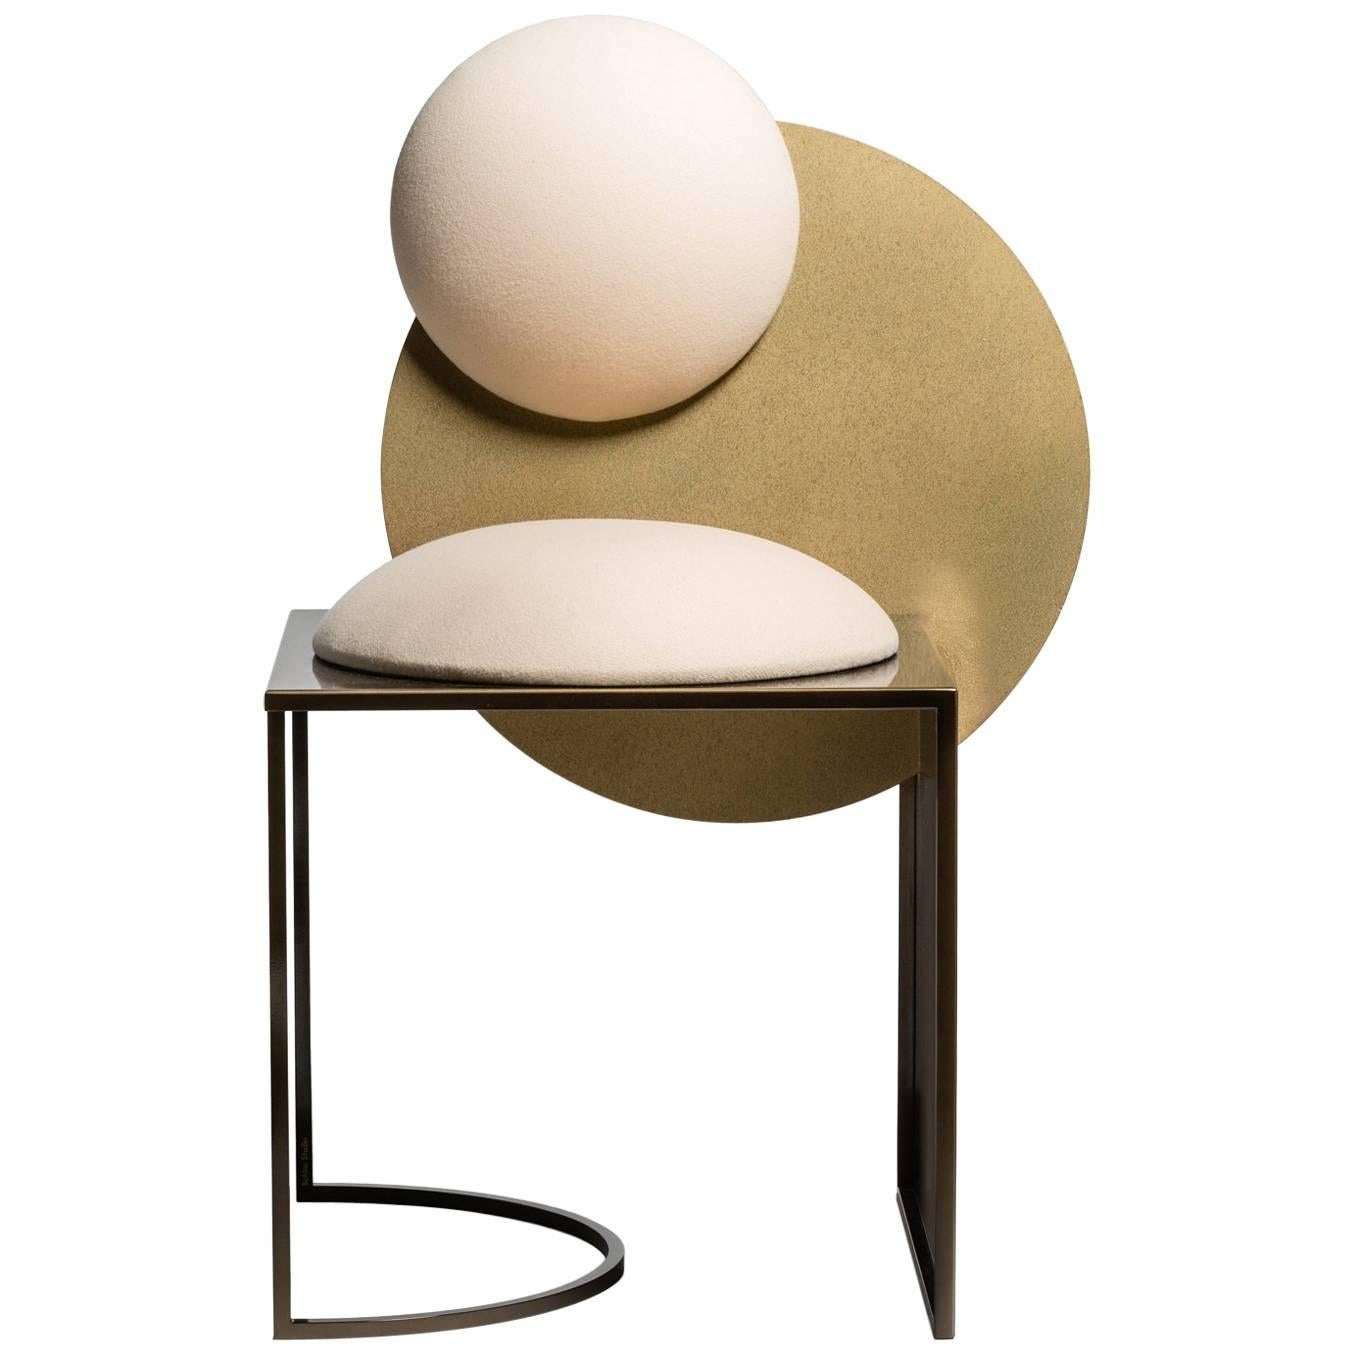 Celeste Chair In White Fabric And Metal, By Lara Bohinc, In Stock For Sale